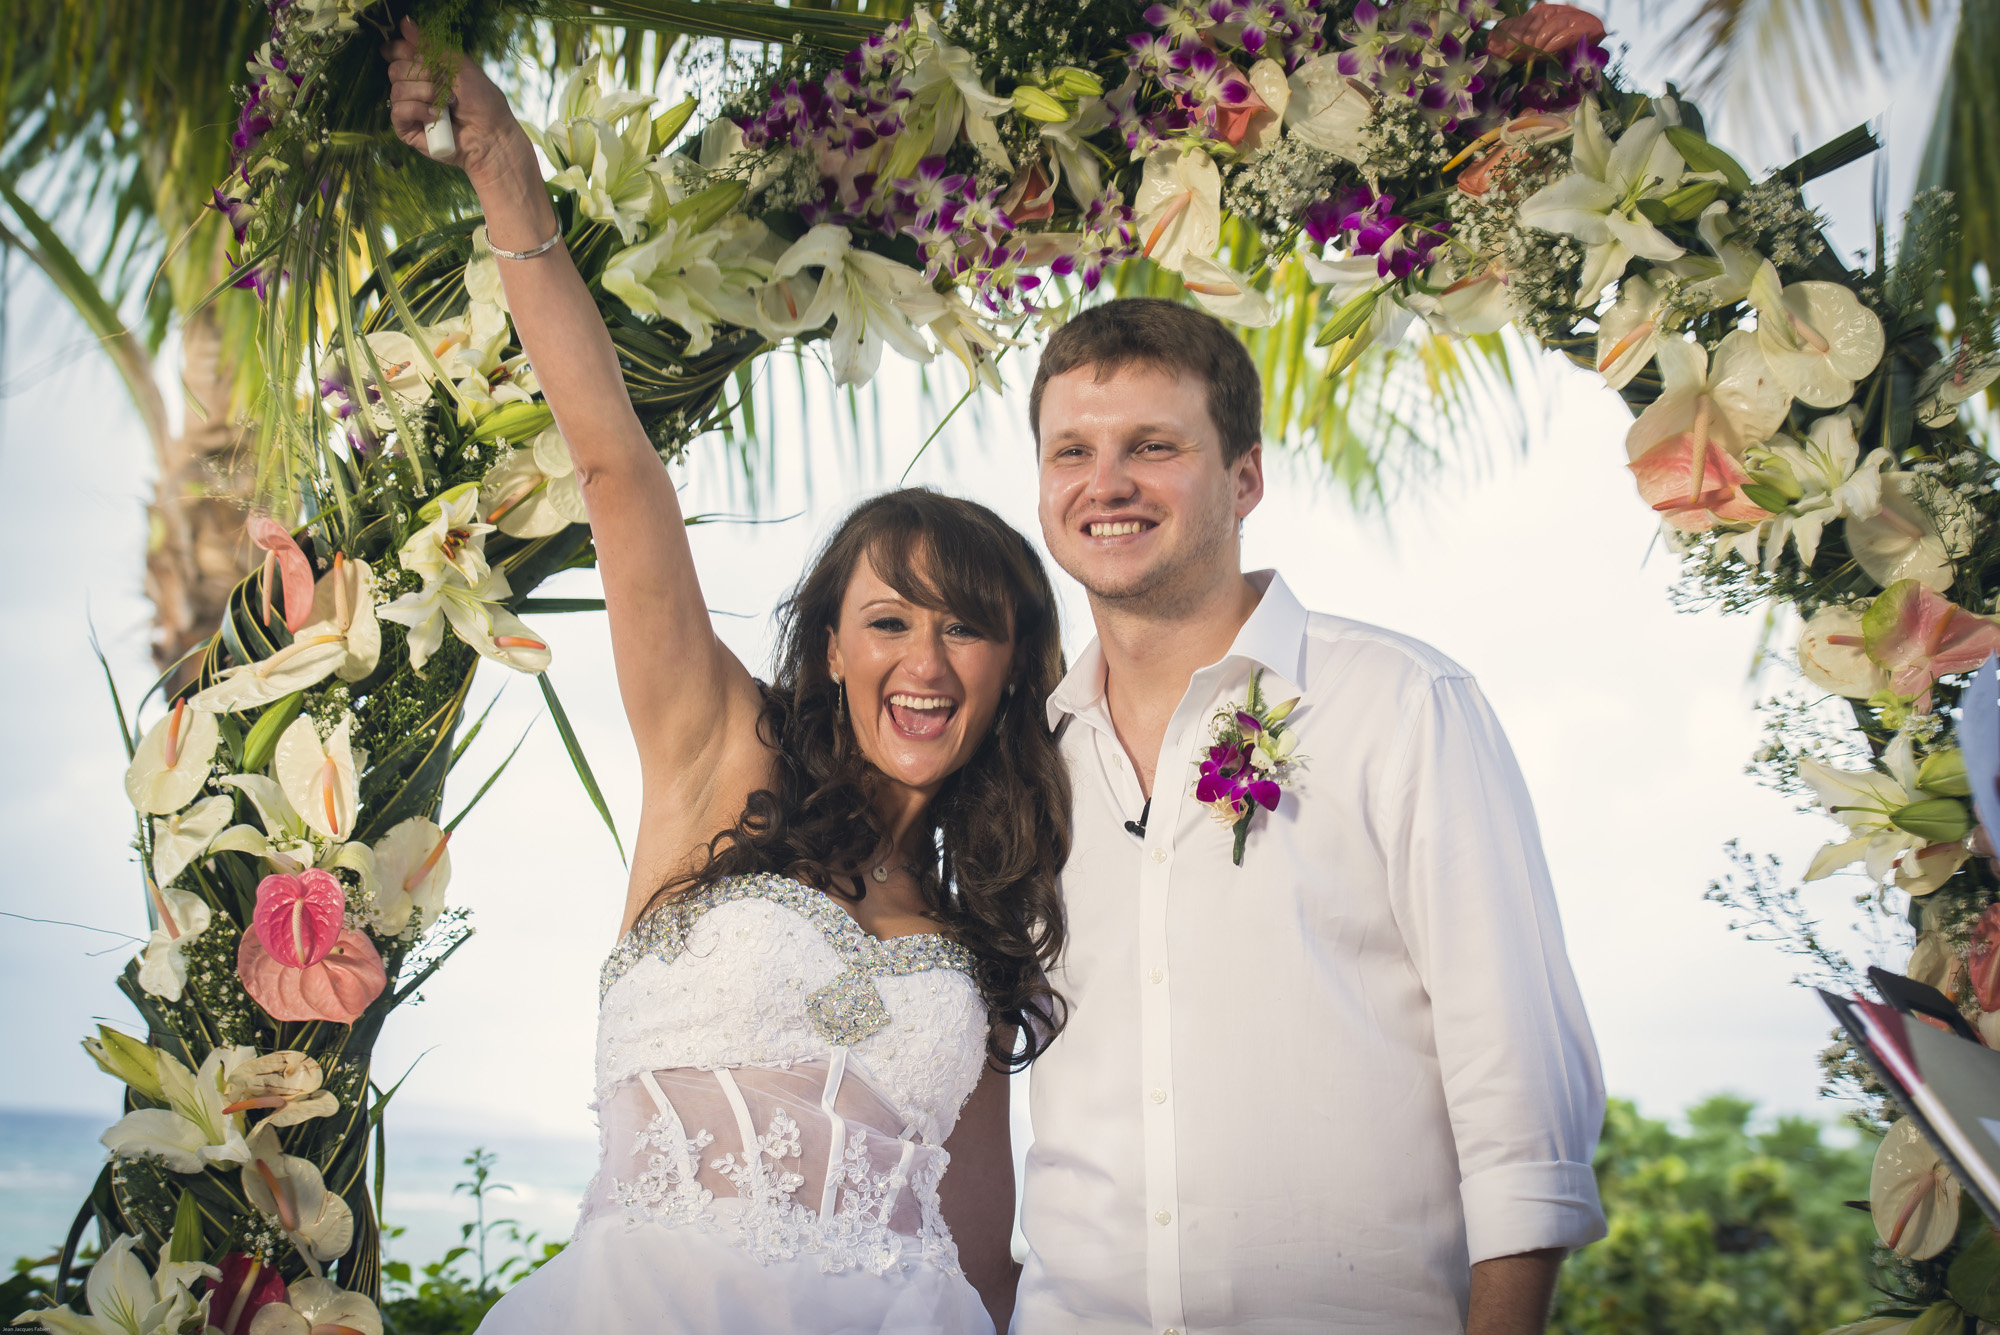 Justyna and Michael-88.jpg